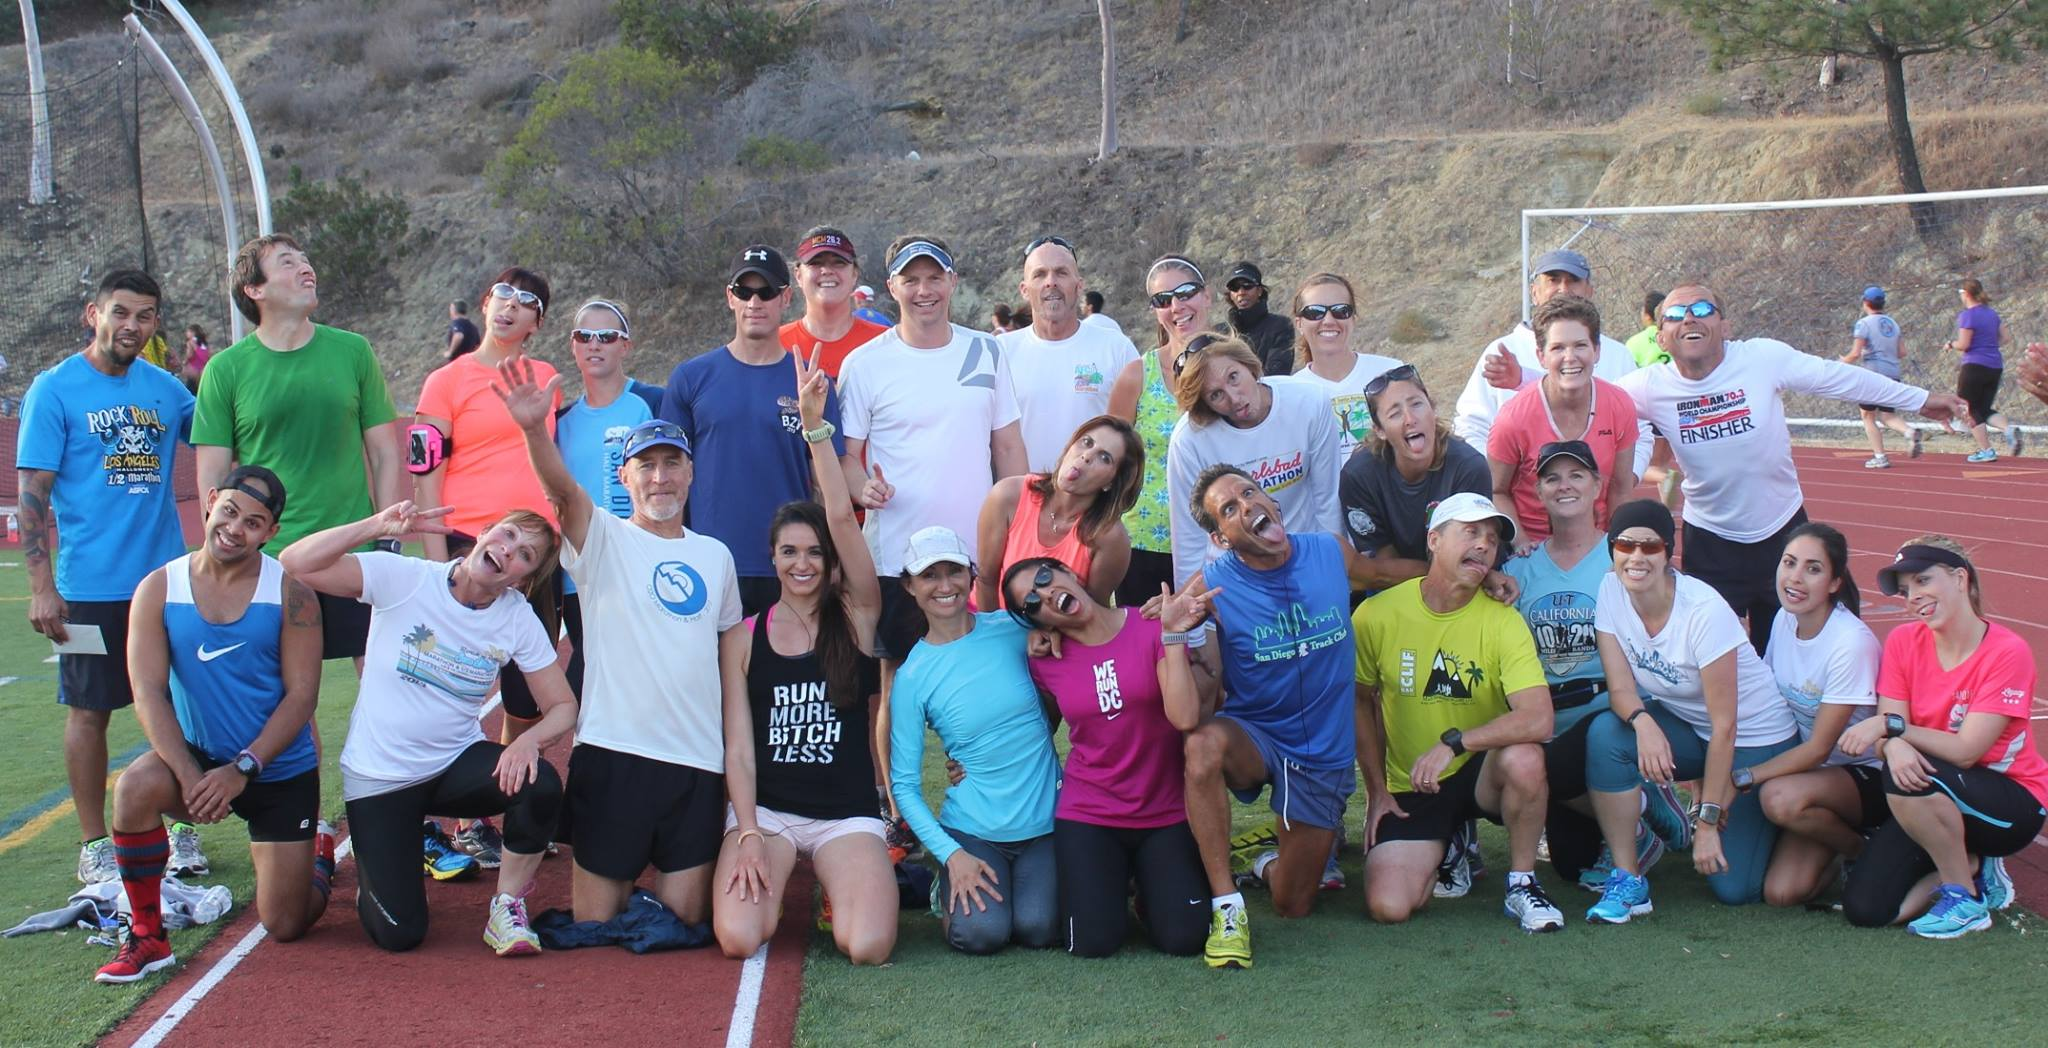 San Diego Track Club group that went to Mountains 2 Beach Marathon. Tapering made us psychos.